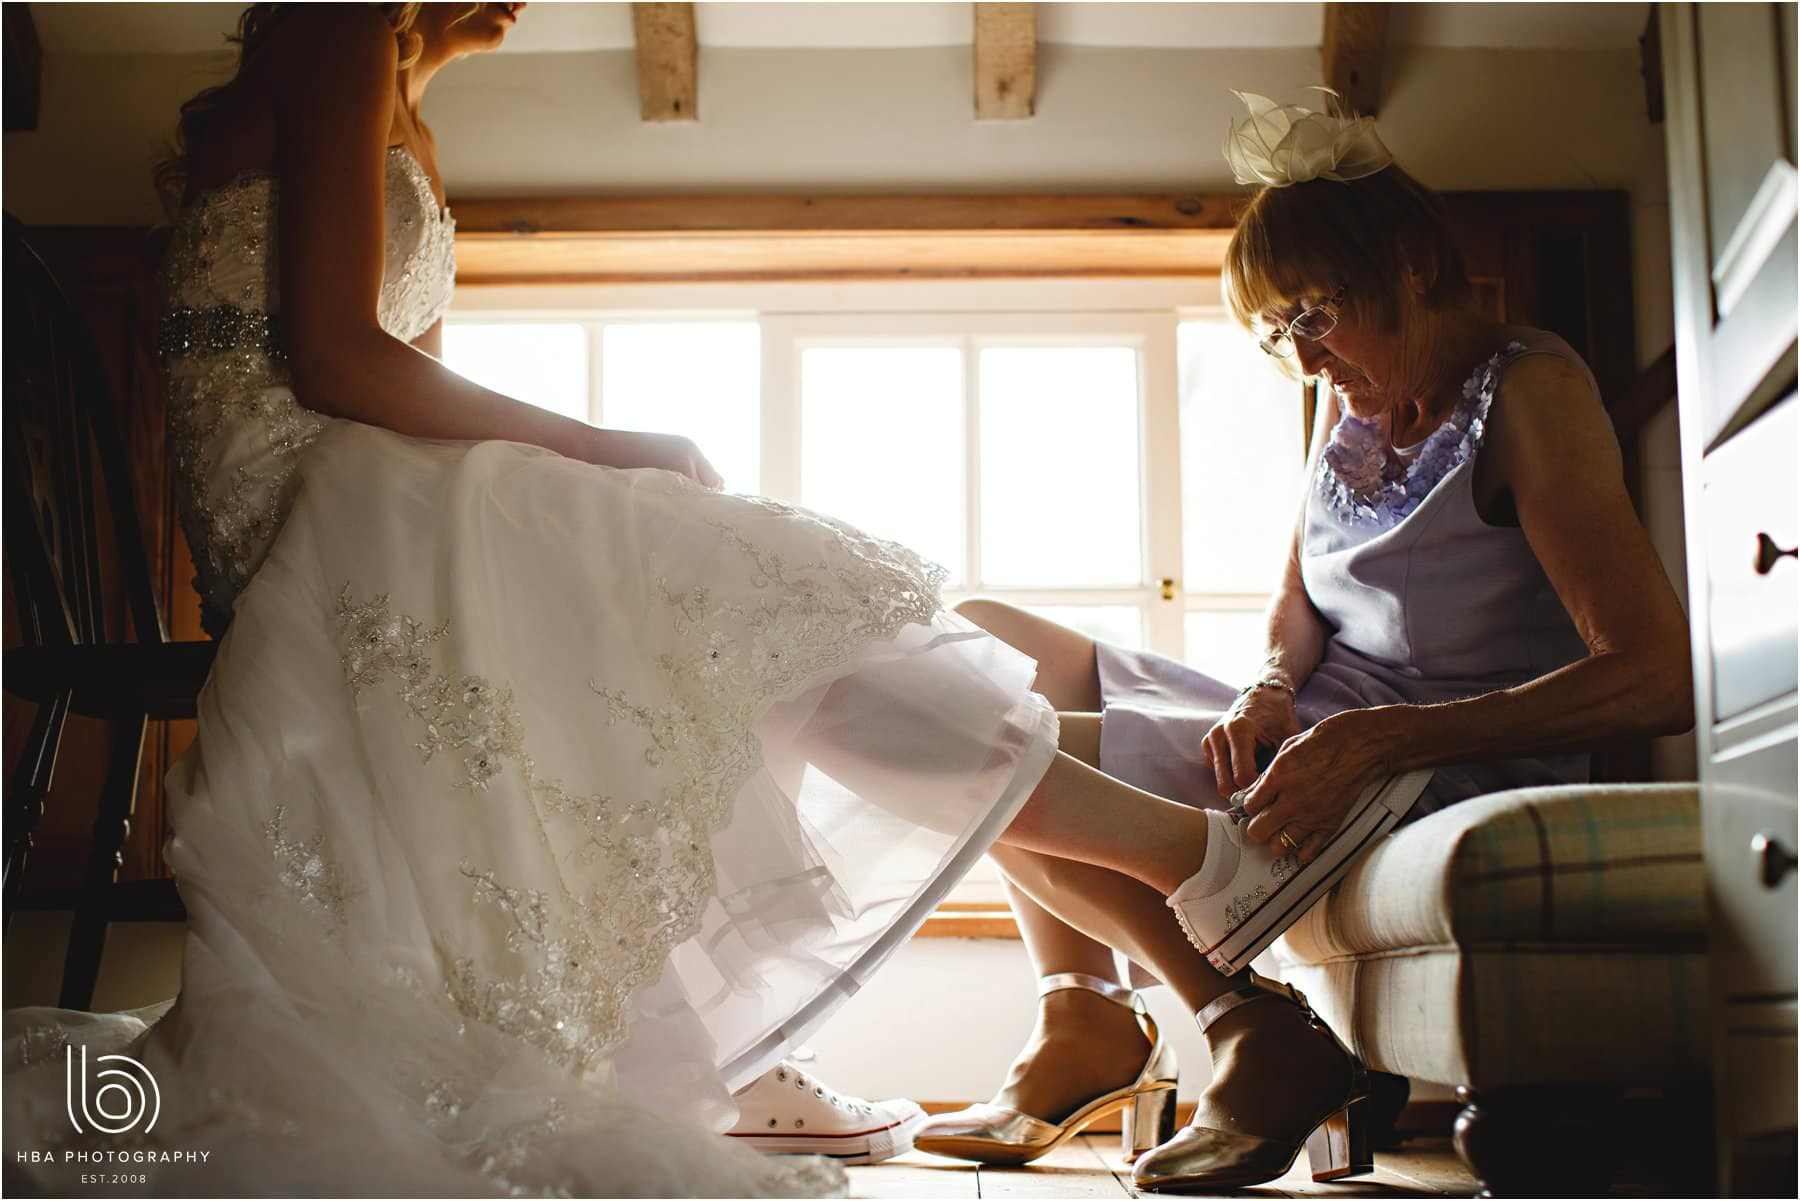 The bride's mum helping her to get dressed